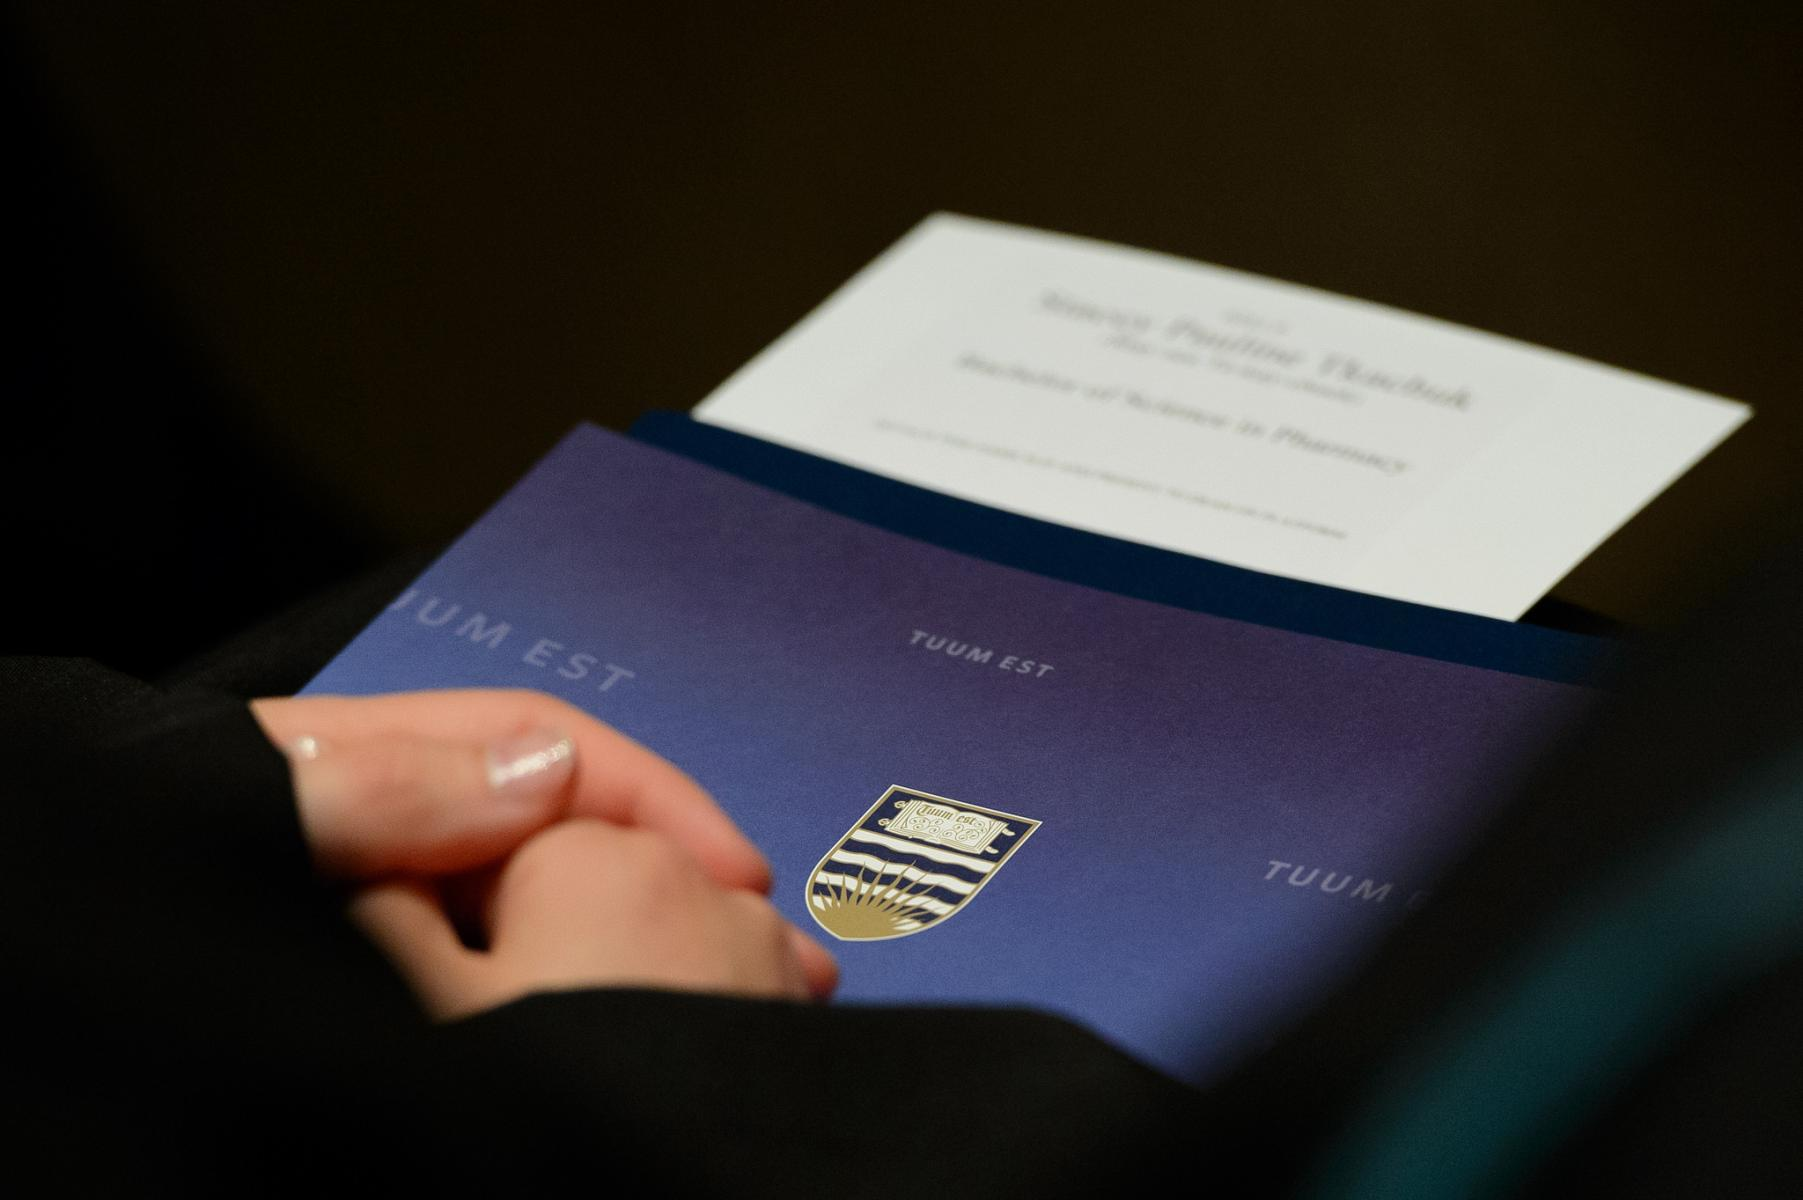 A graduate's hands holding a UBC graduation event program, from the spring 2014 congregation. Photo credit: Don Erhardt / UBC Communications & Marketing